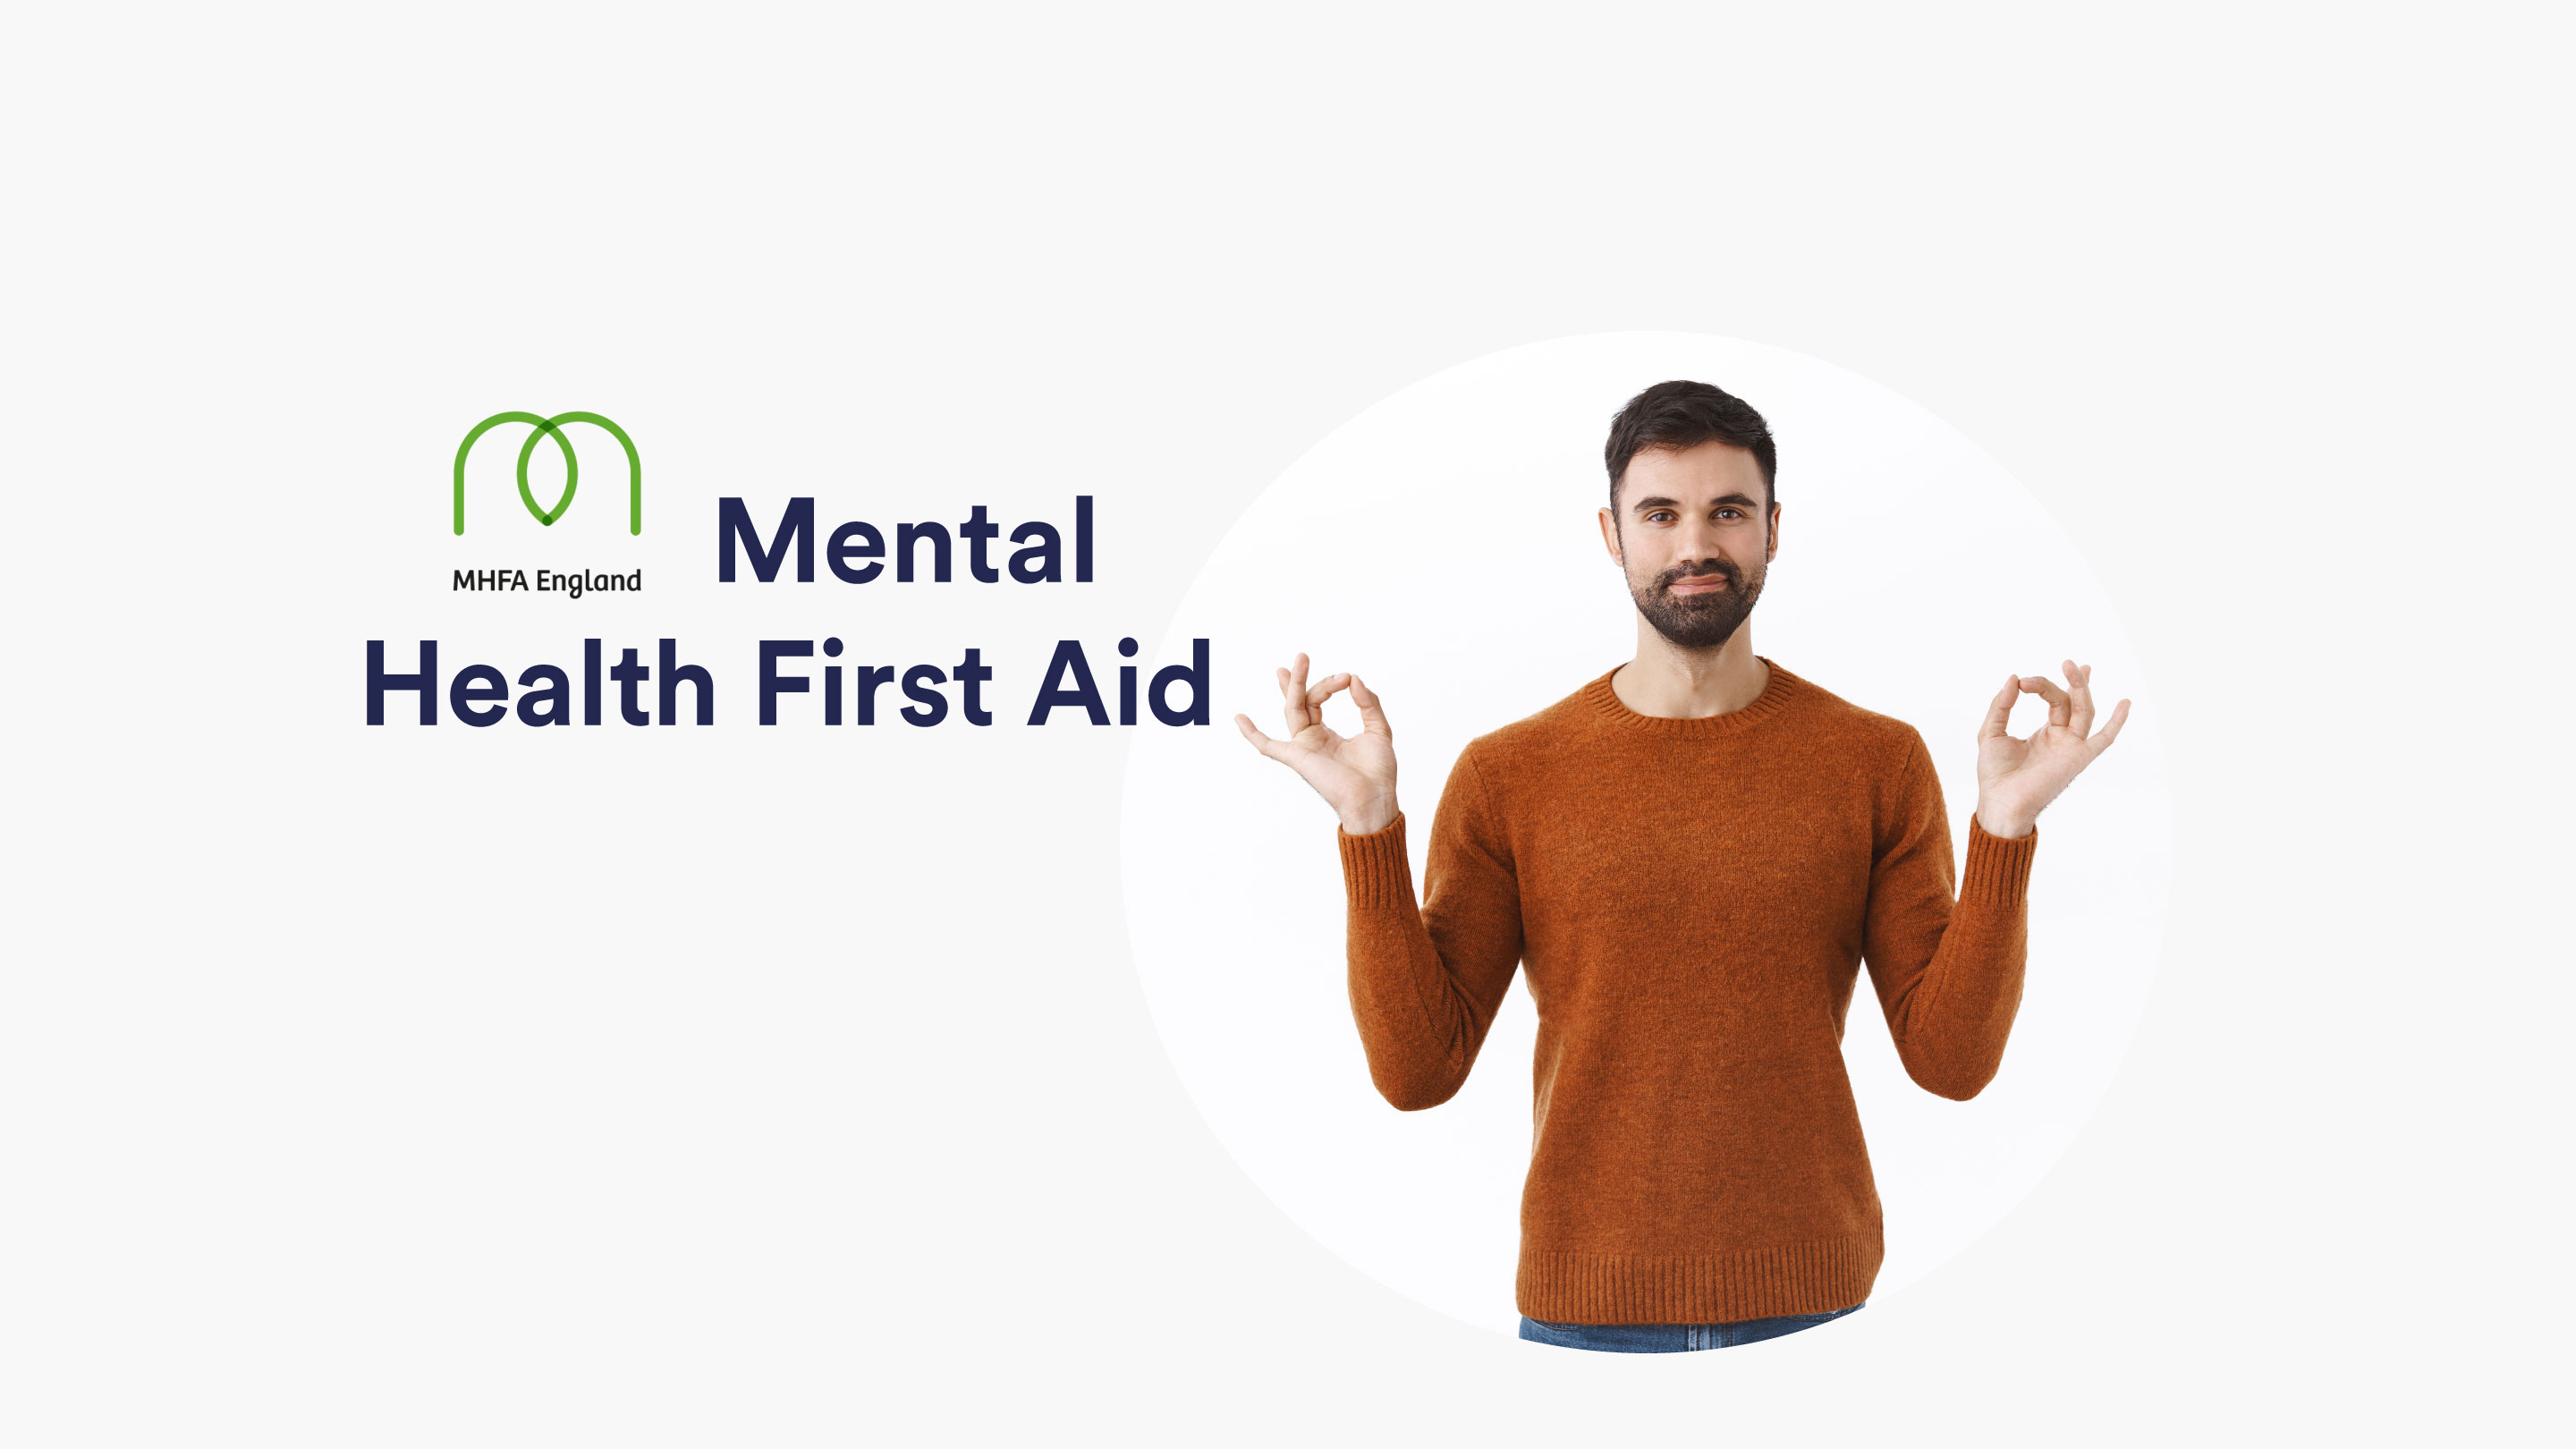 mhfa_mental_health_first_aid_at_work_training_course_stoke_on_trent.jpg